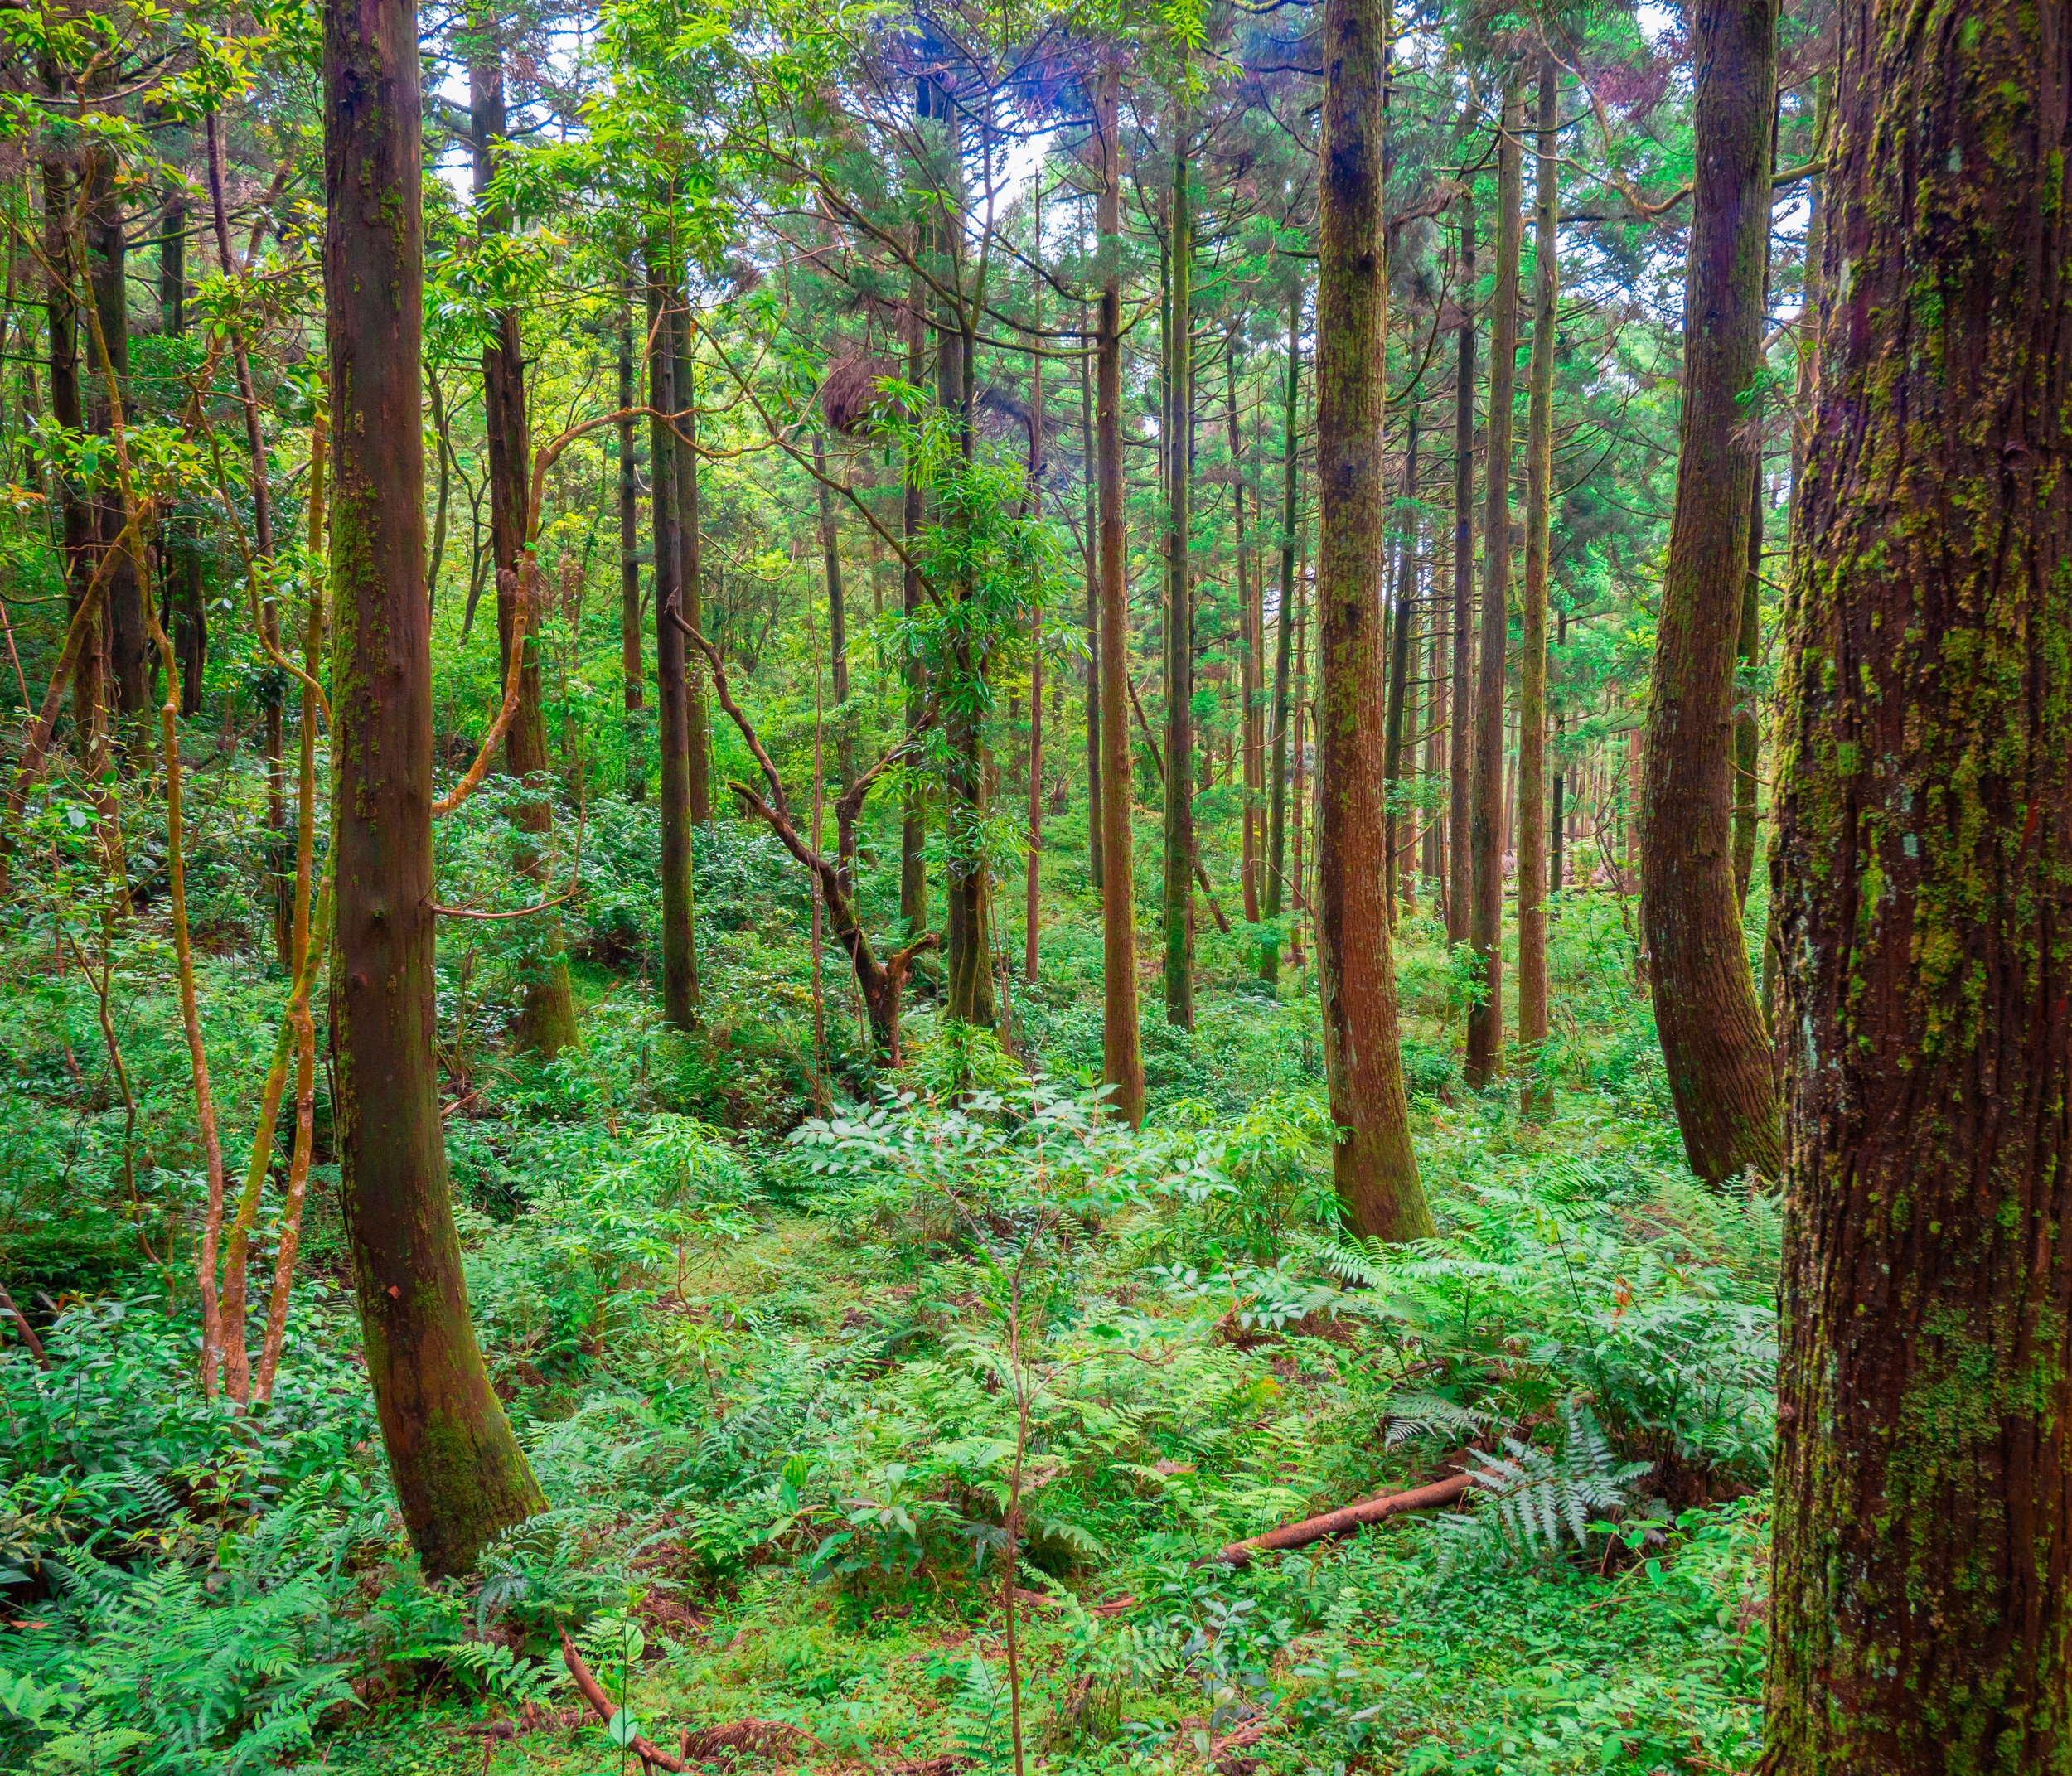 Japanese pine forest. f 7.1, ISO 1600, 1/50, 28mm